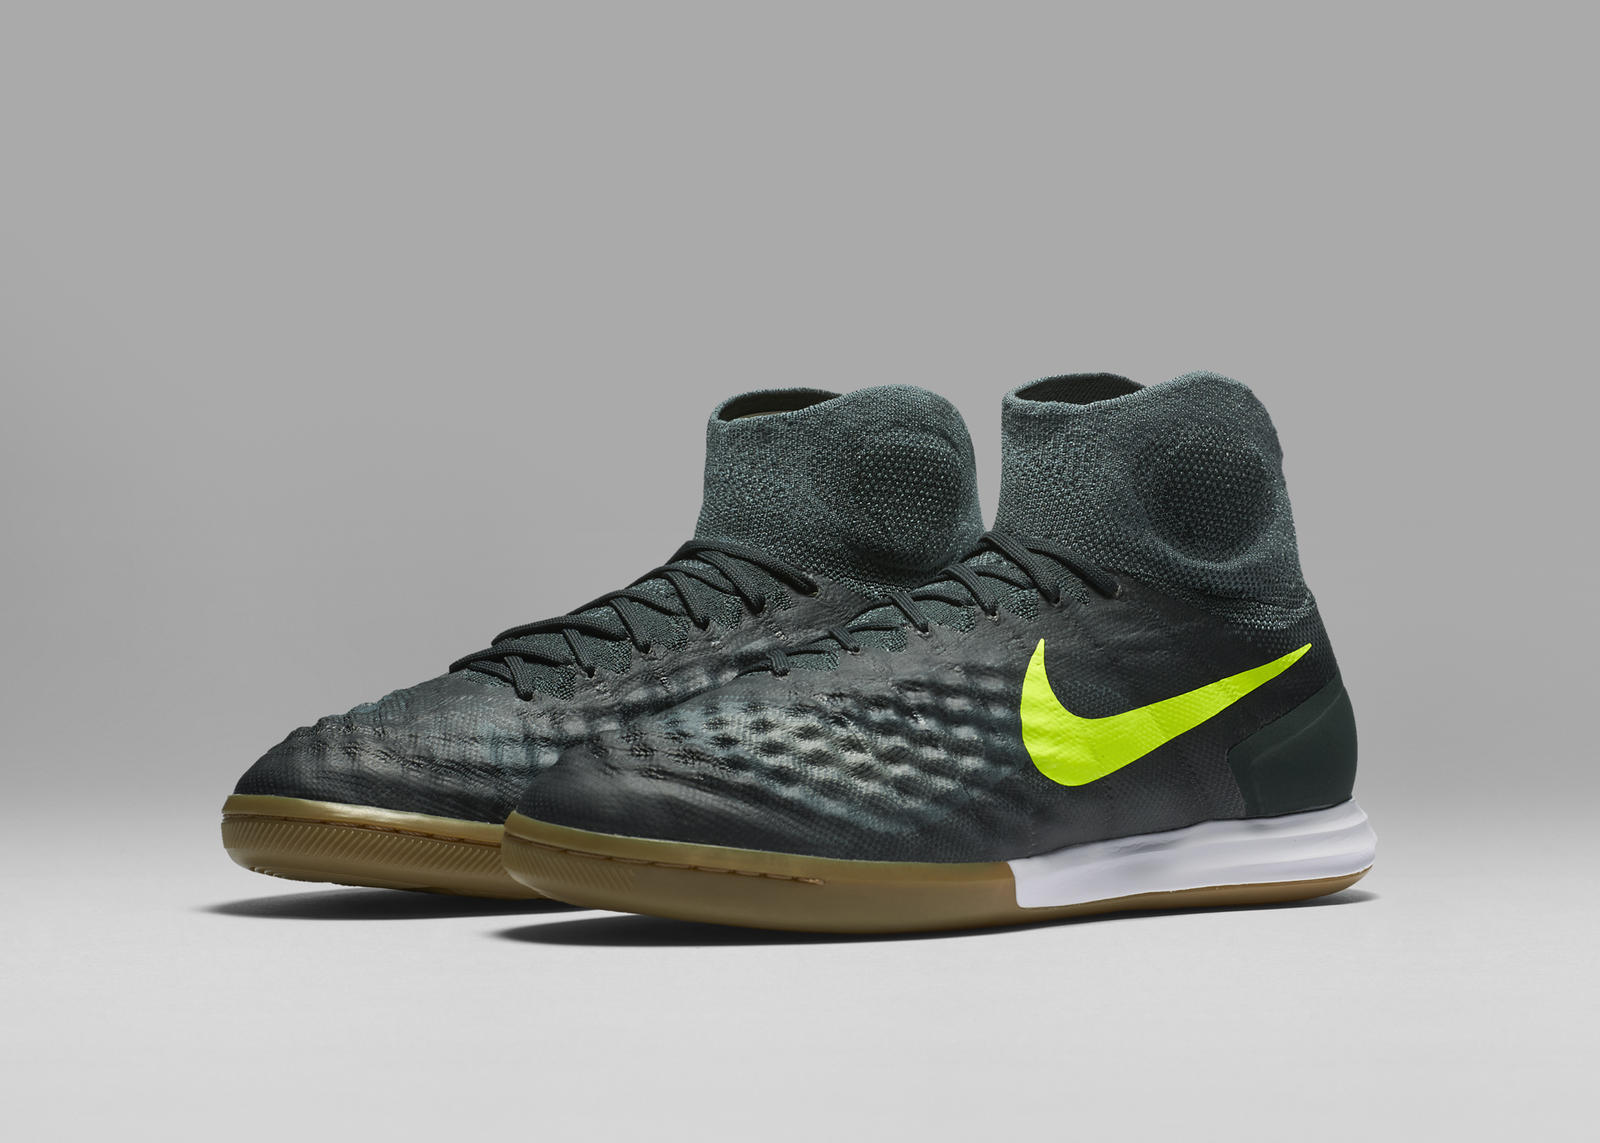 Ho16 Gfb Floodlights Nfx Magista X Proximo Ic 05 07